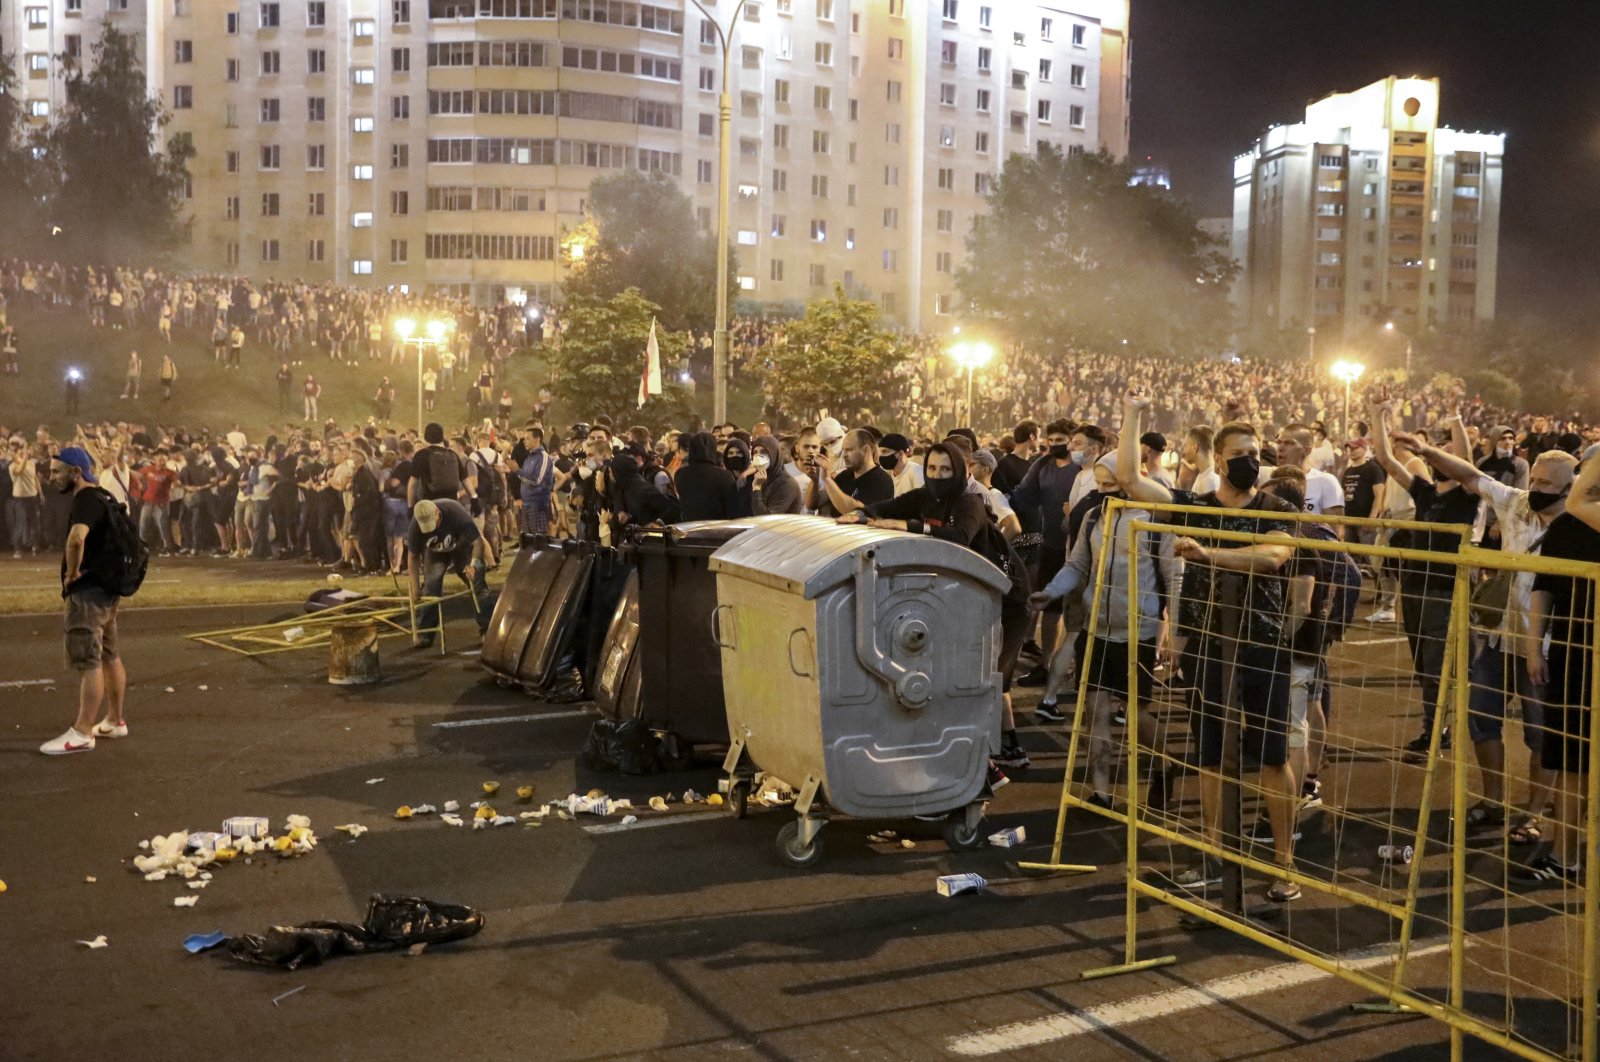 Protesters try to set up a barricade during clashes with police after the Belarusian presidential election in Minsk, Belarus, Aug. 9, 2020. (AP Photo)